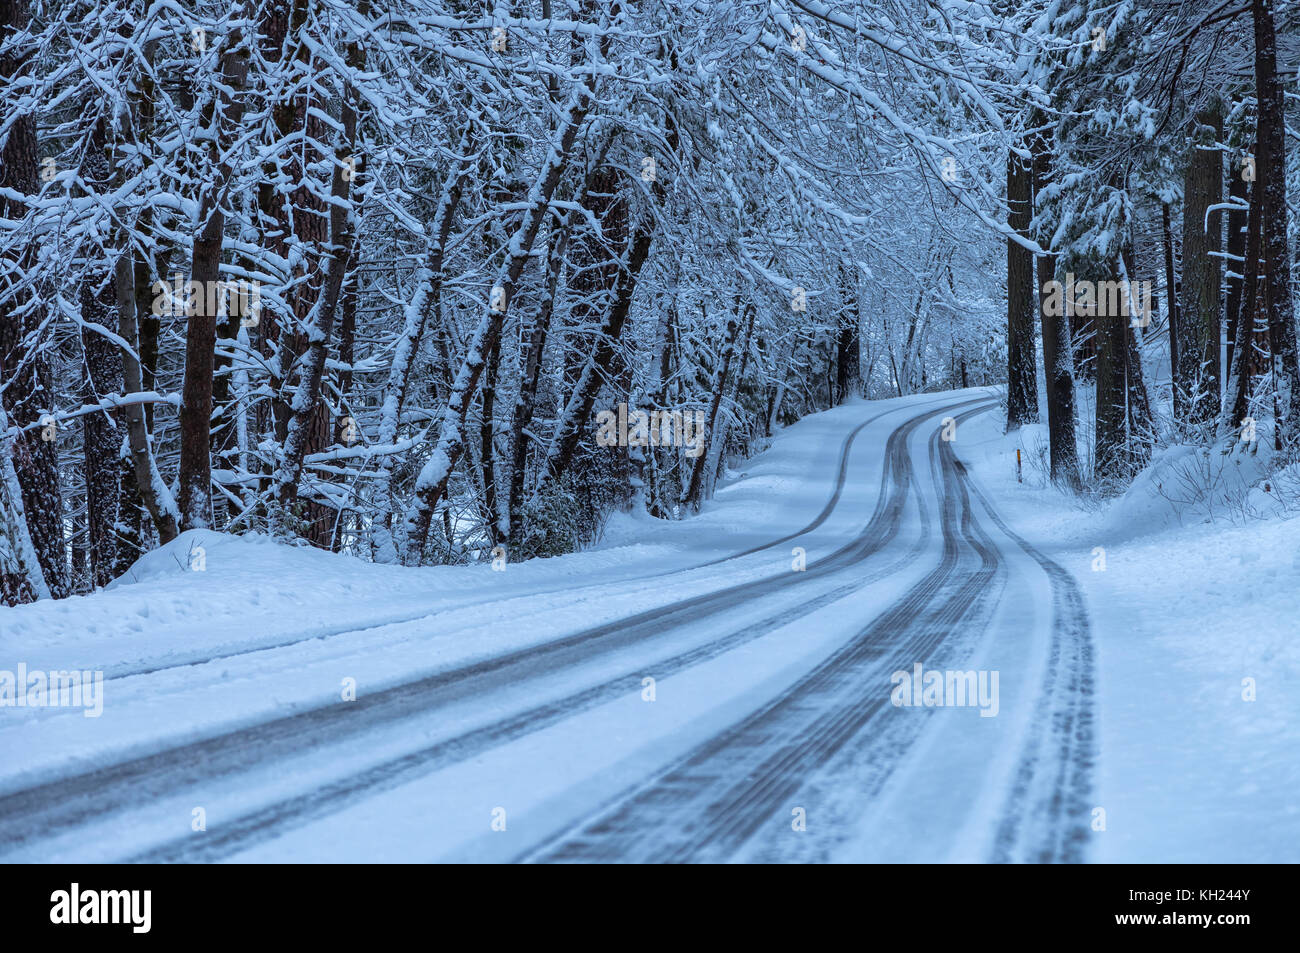 Fresh new snow covered the trees and the road after an early spring snow storm, Yosemite National Park, California, Stock Photo